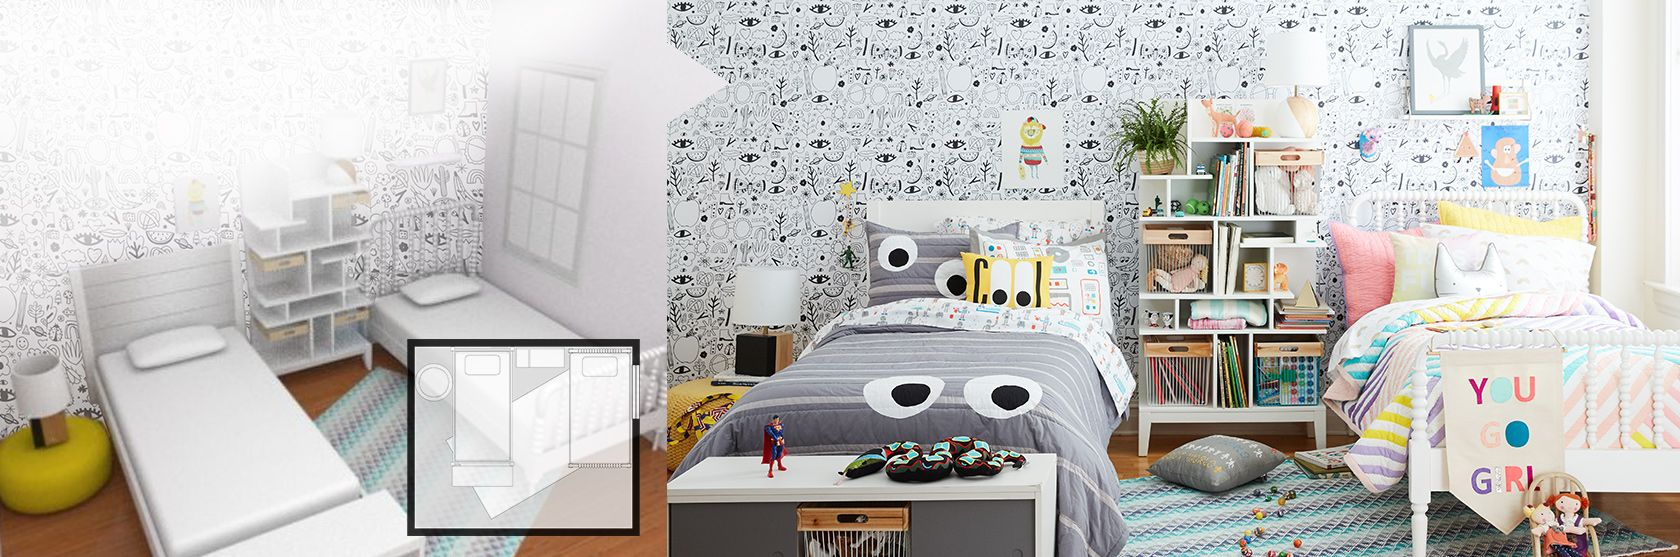 Kids  amp  Baby Furniture  Bedding and Toys   The Land of Nod  Design Services room design